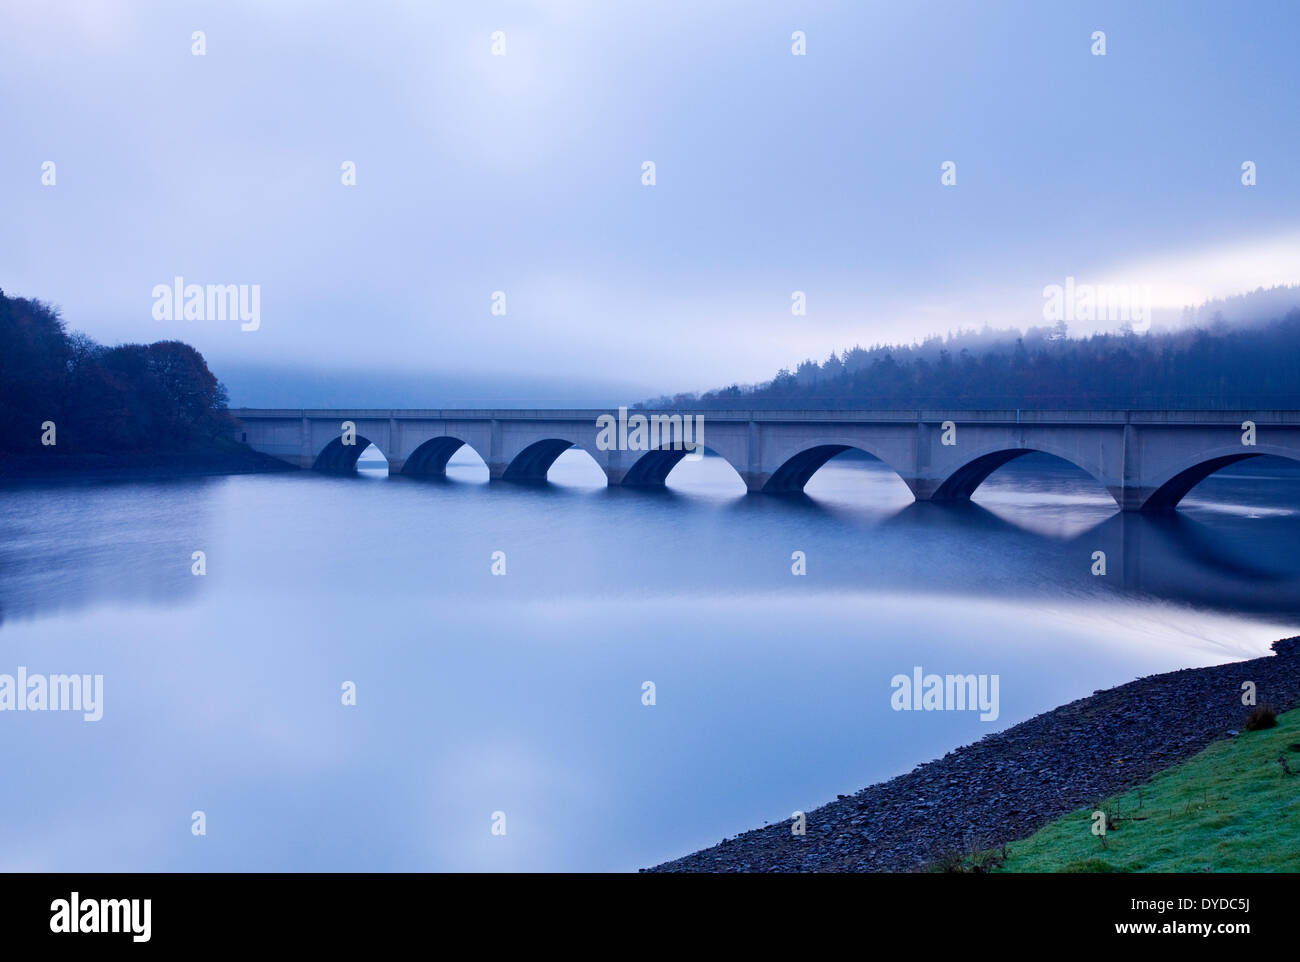 Ashopton Viaduct over Ladybower Reservoir in the Peak District on a foggy morning. Stock Photo